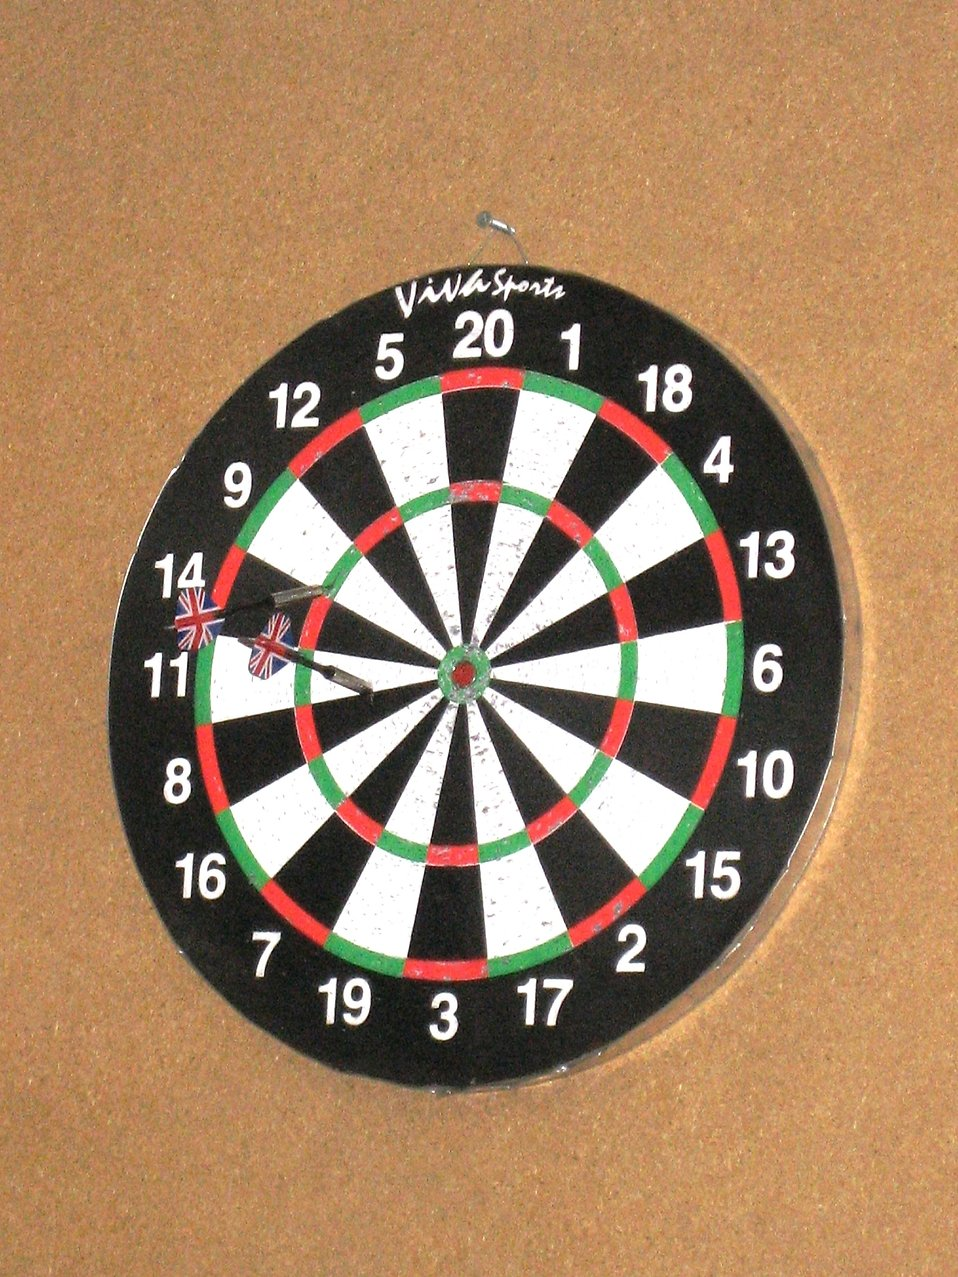 A dartboard : Free Stock Photo